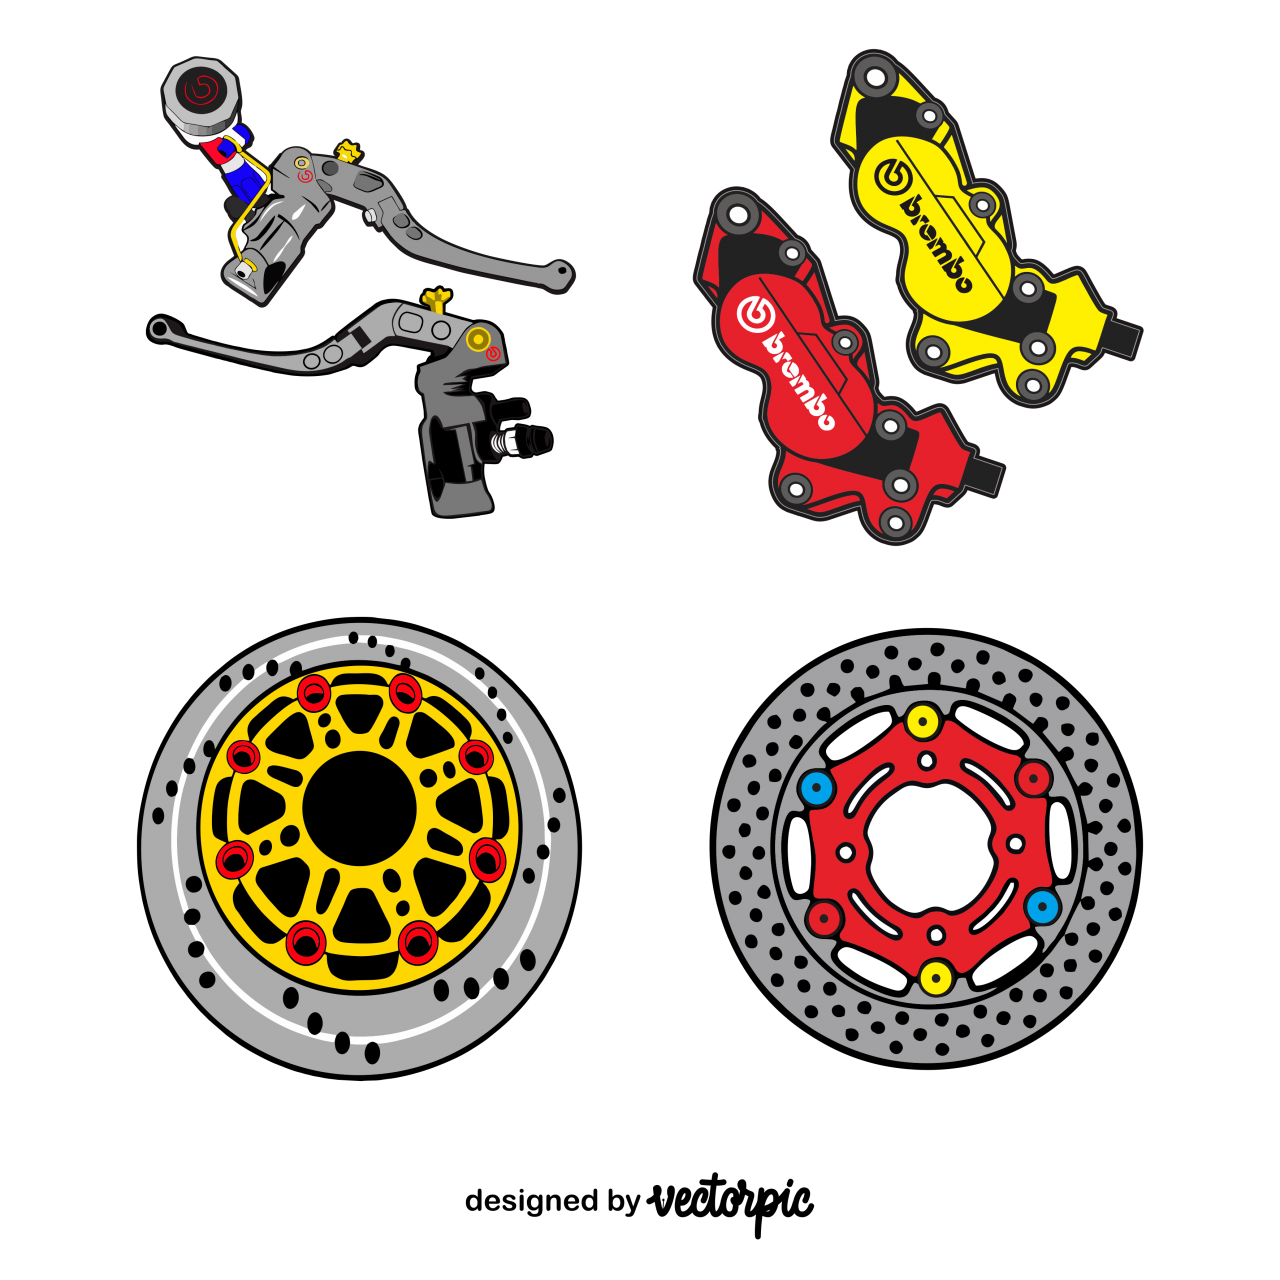 sparepart racing thailook design free vector Seni